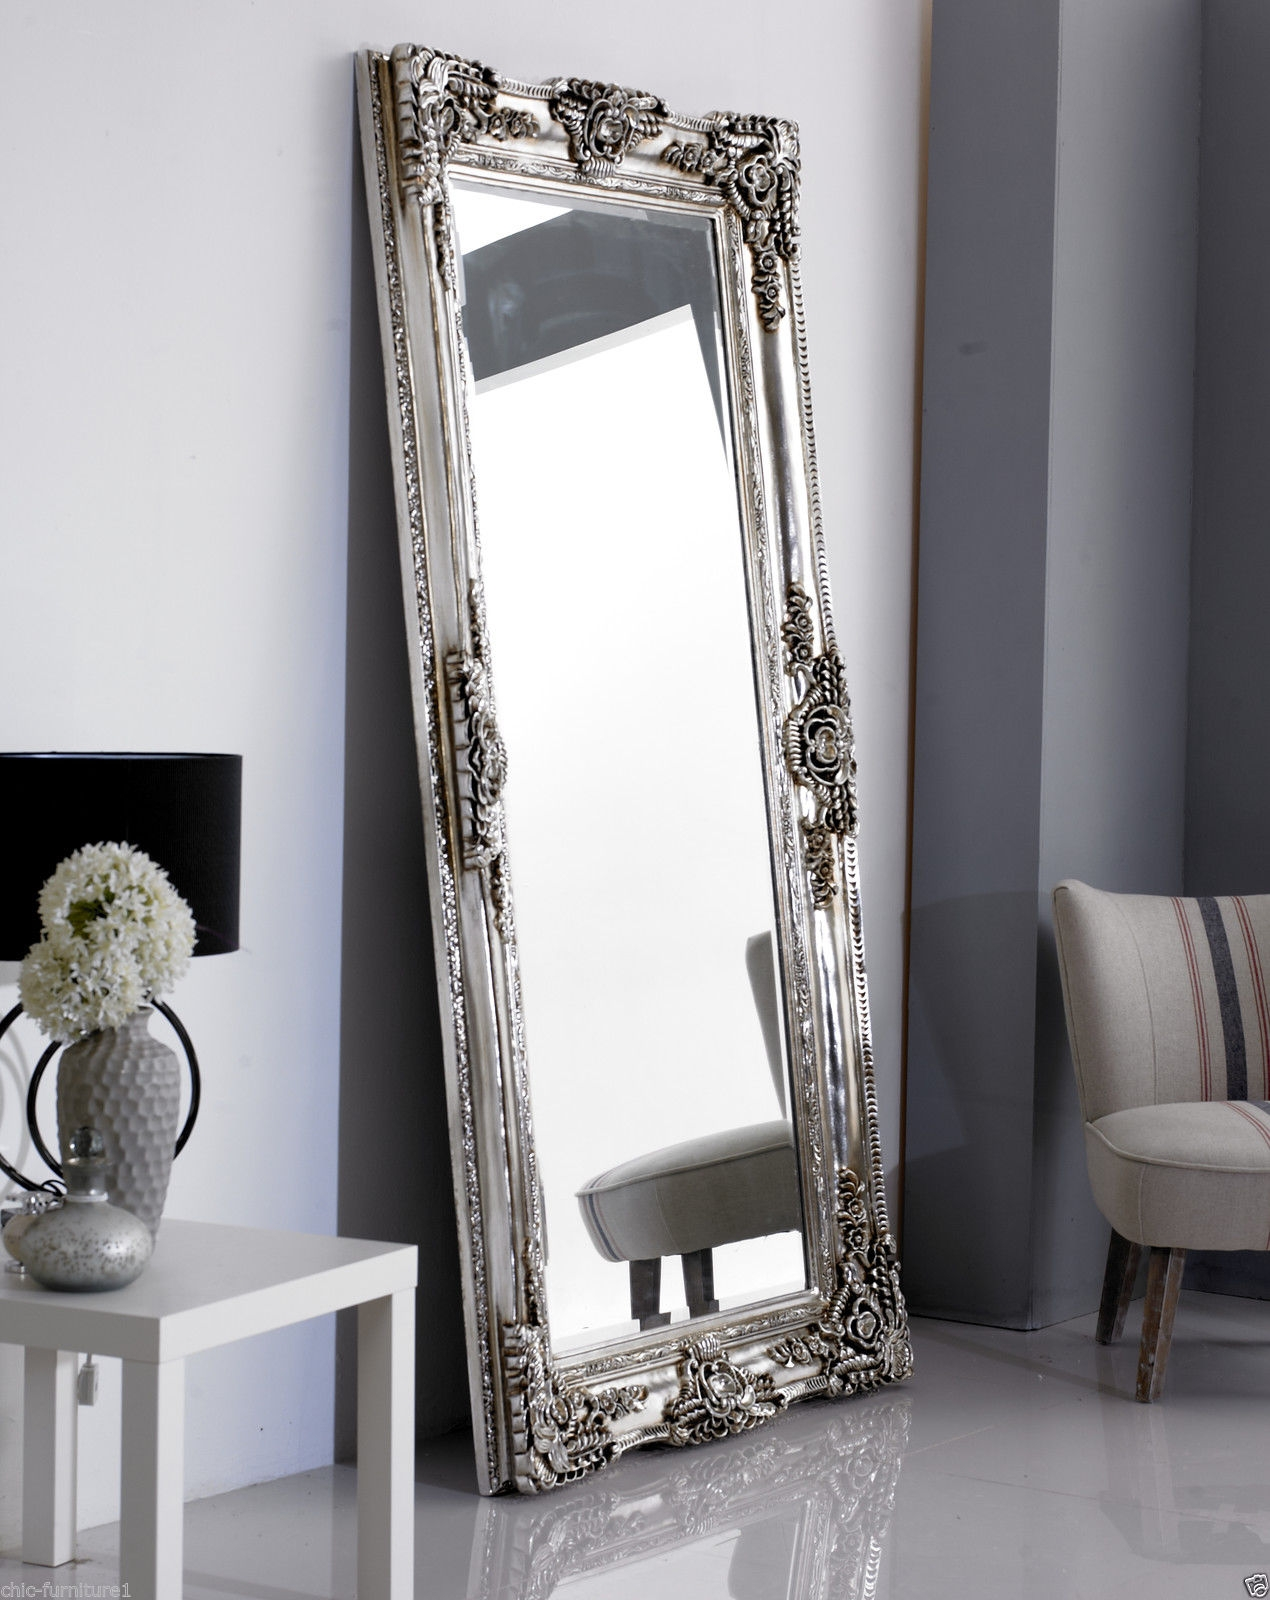 Leaner Mirror Ebay Throughout Ornate Leaner Mirror (Image 6 of 15)